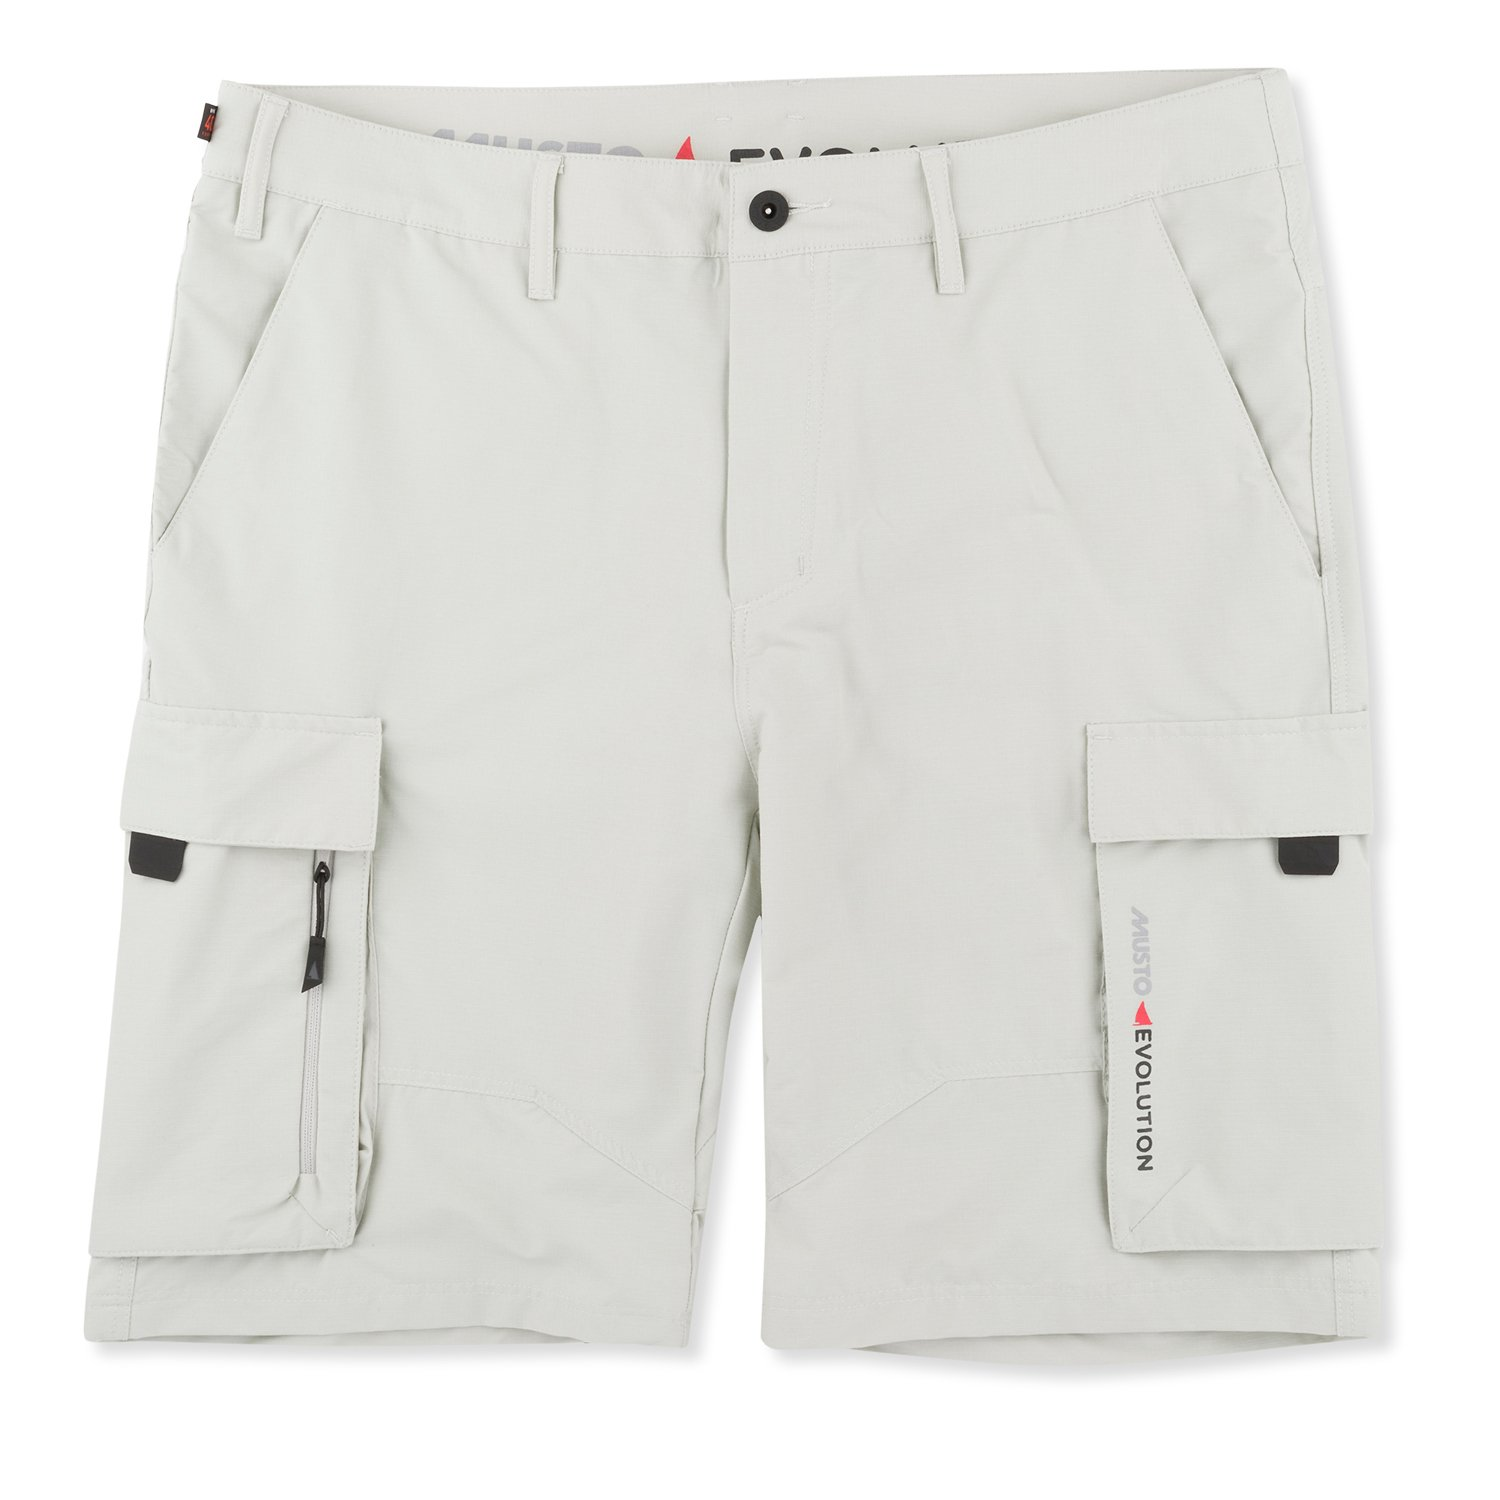 2013 Musto Evolution Deck Shorts with UV Protection Fast Dry Sailing Trousers